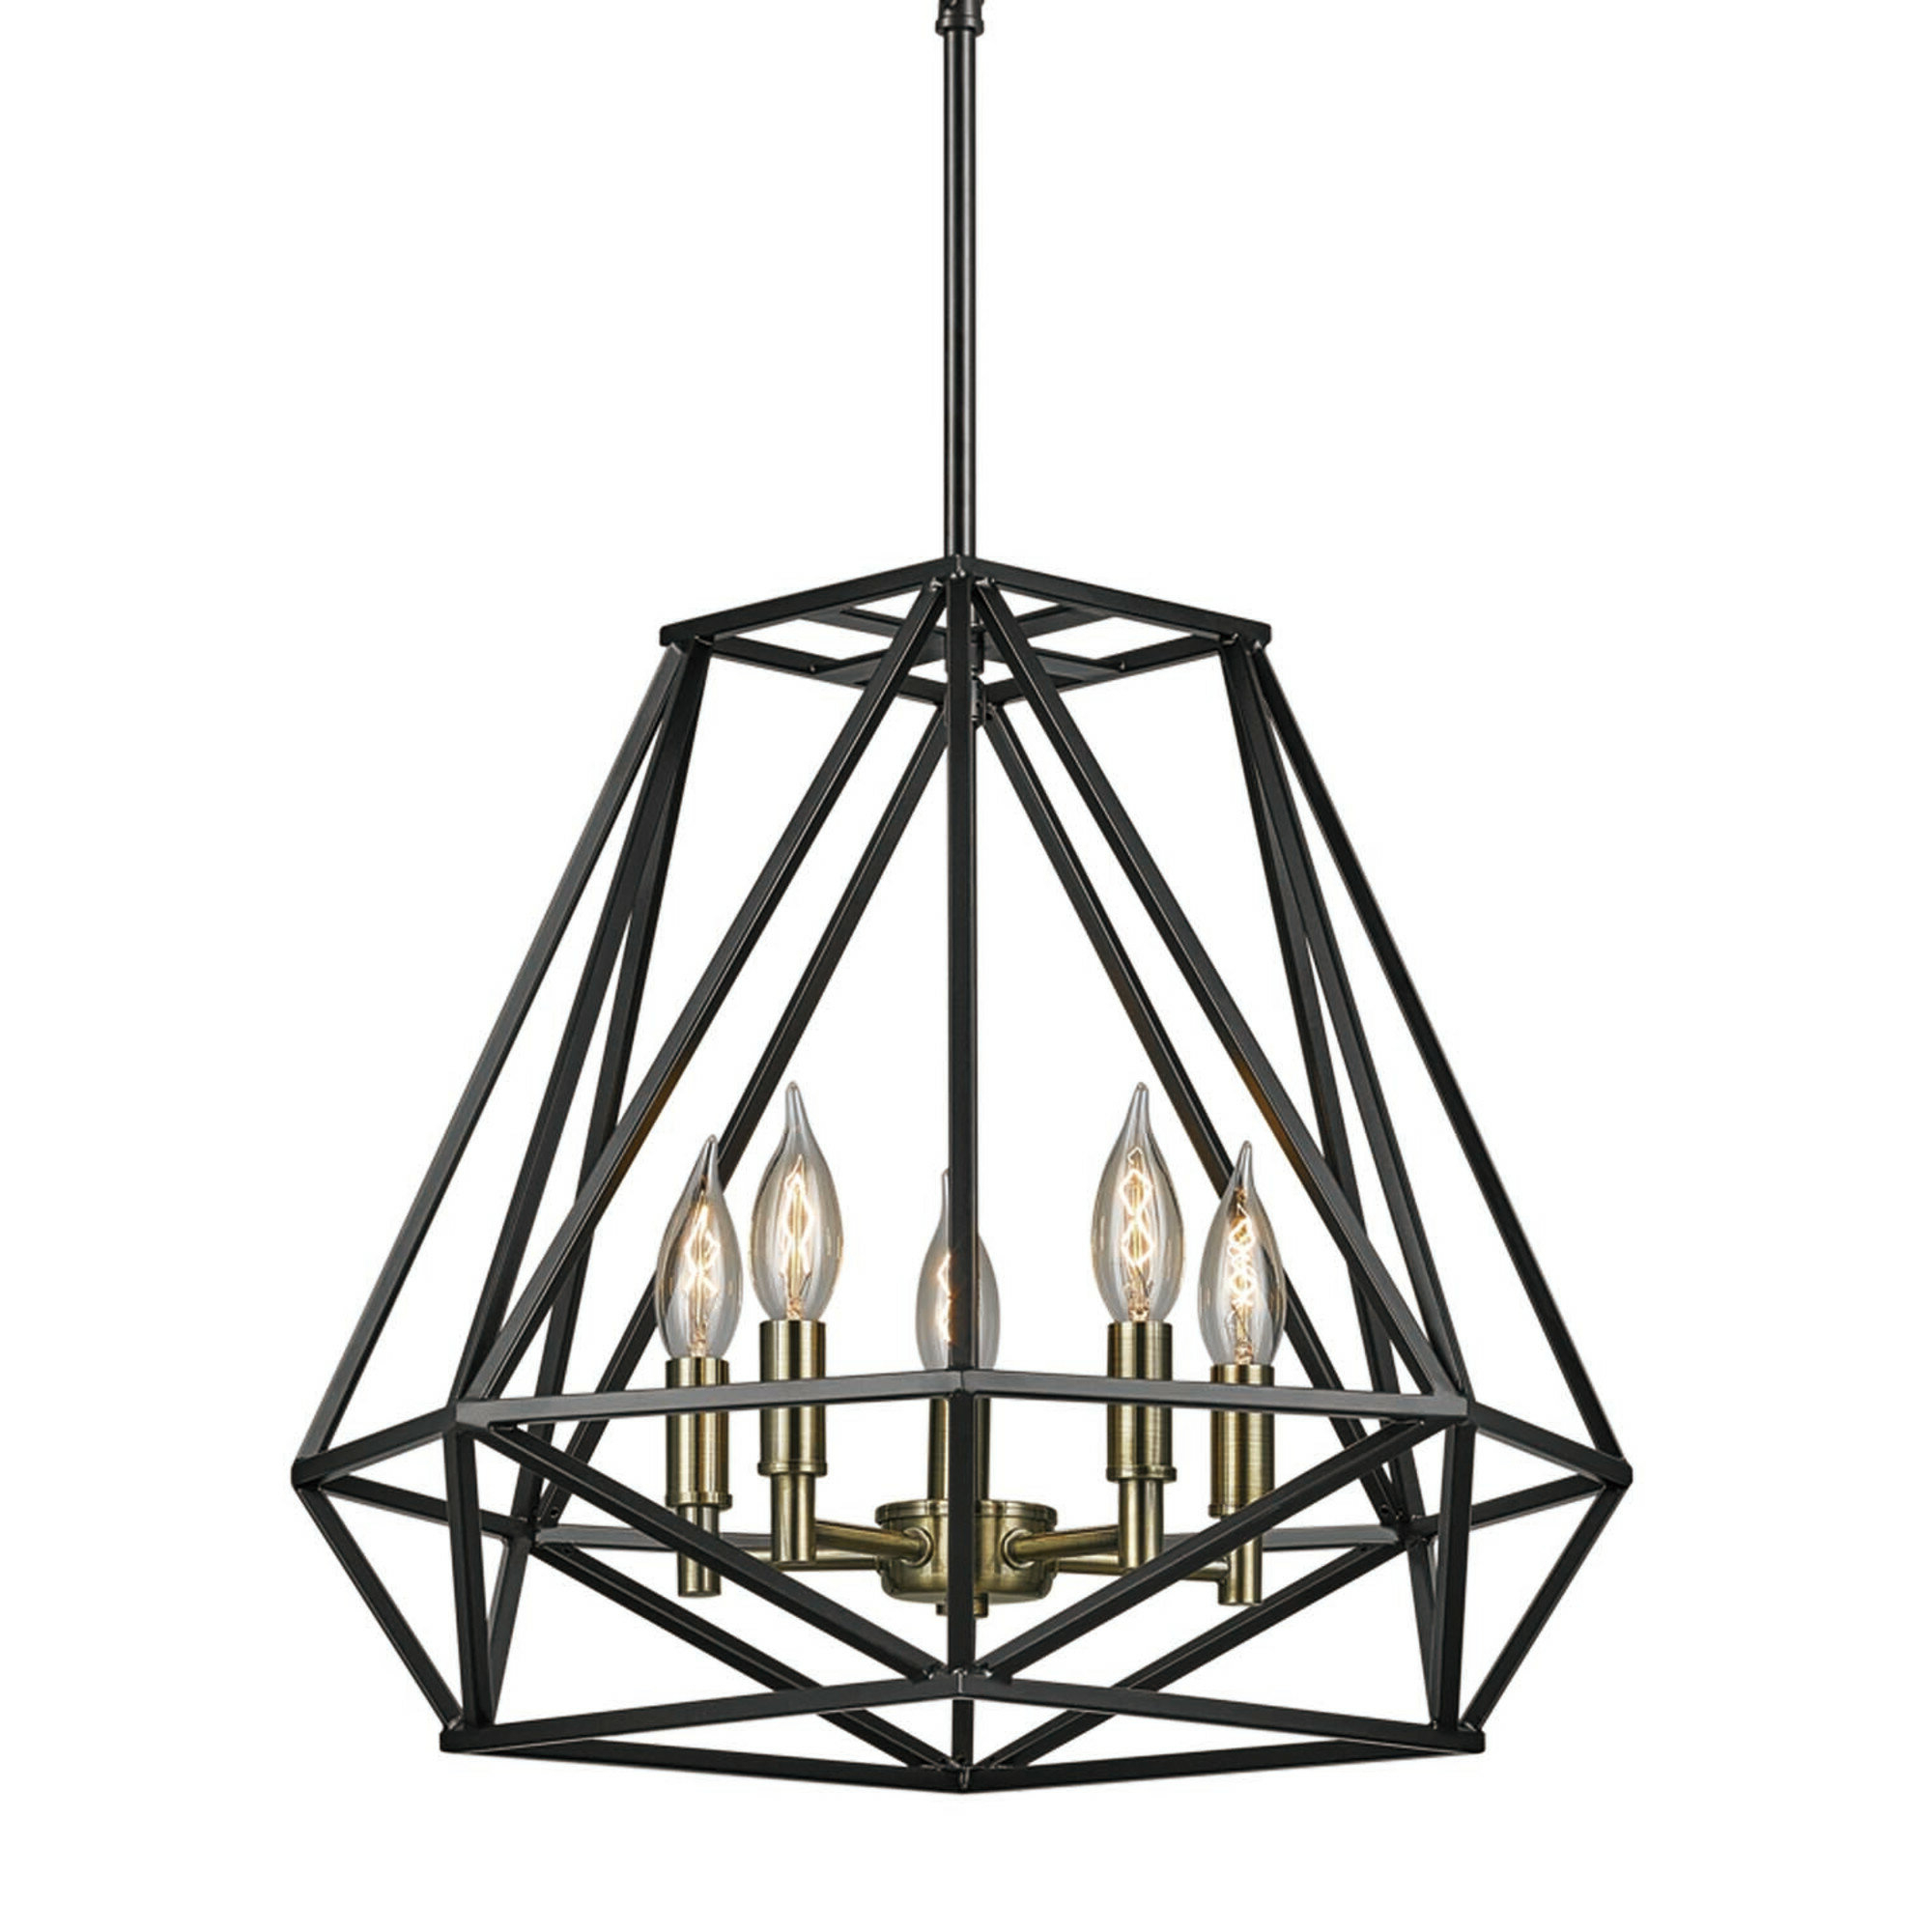 Tabit 5 Light Geometric Chandelier With Most Up To Date Cavanagh 4 Light Geometric Chandeliers (View 22 of 25)